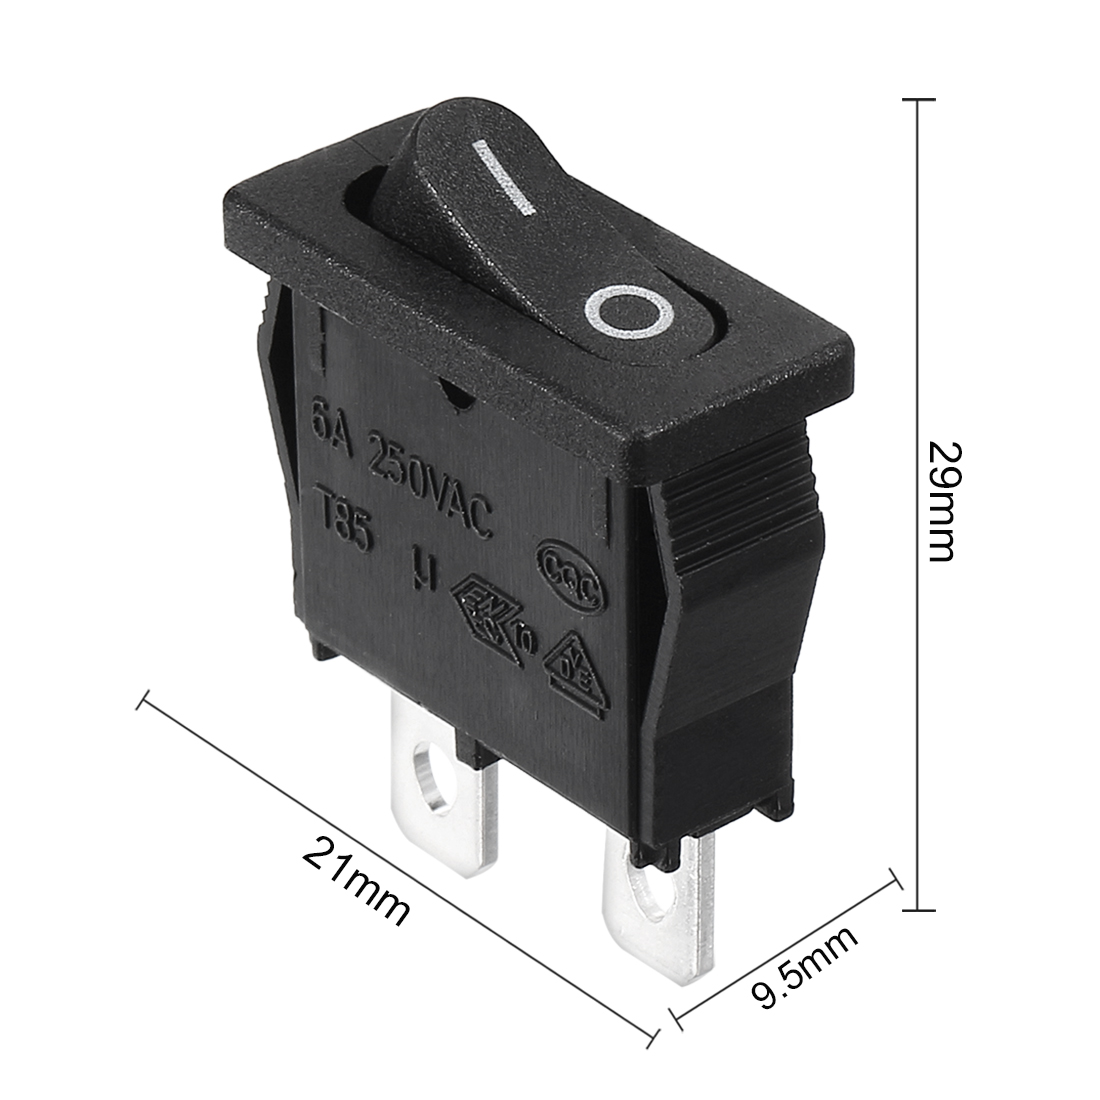 Details about  /Boat Rocker Switch Red Neon Toggle Switch ON//OFF AC 250V 6A 125V 10A 5PCS